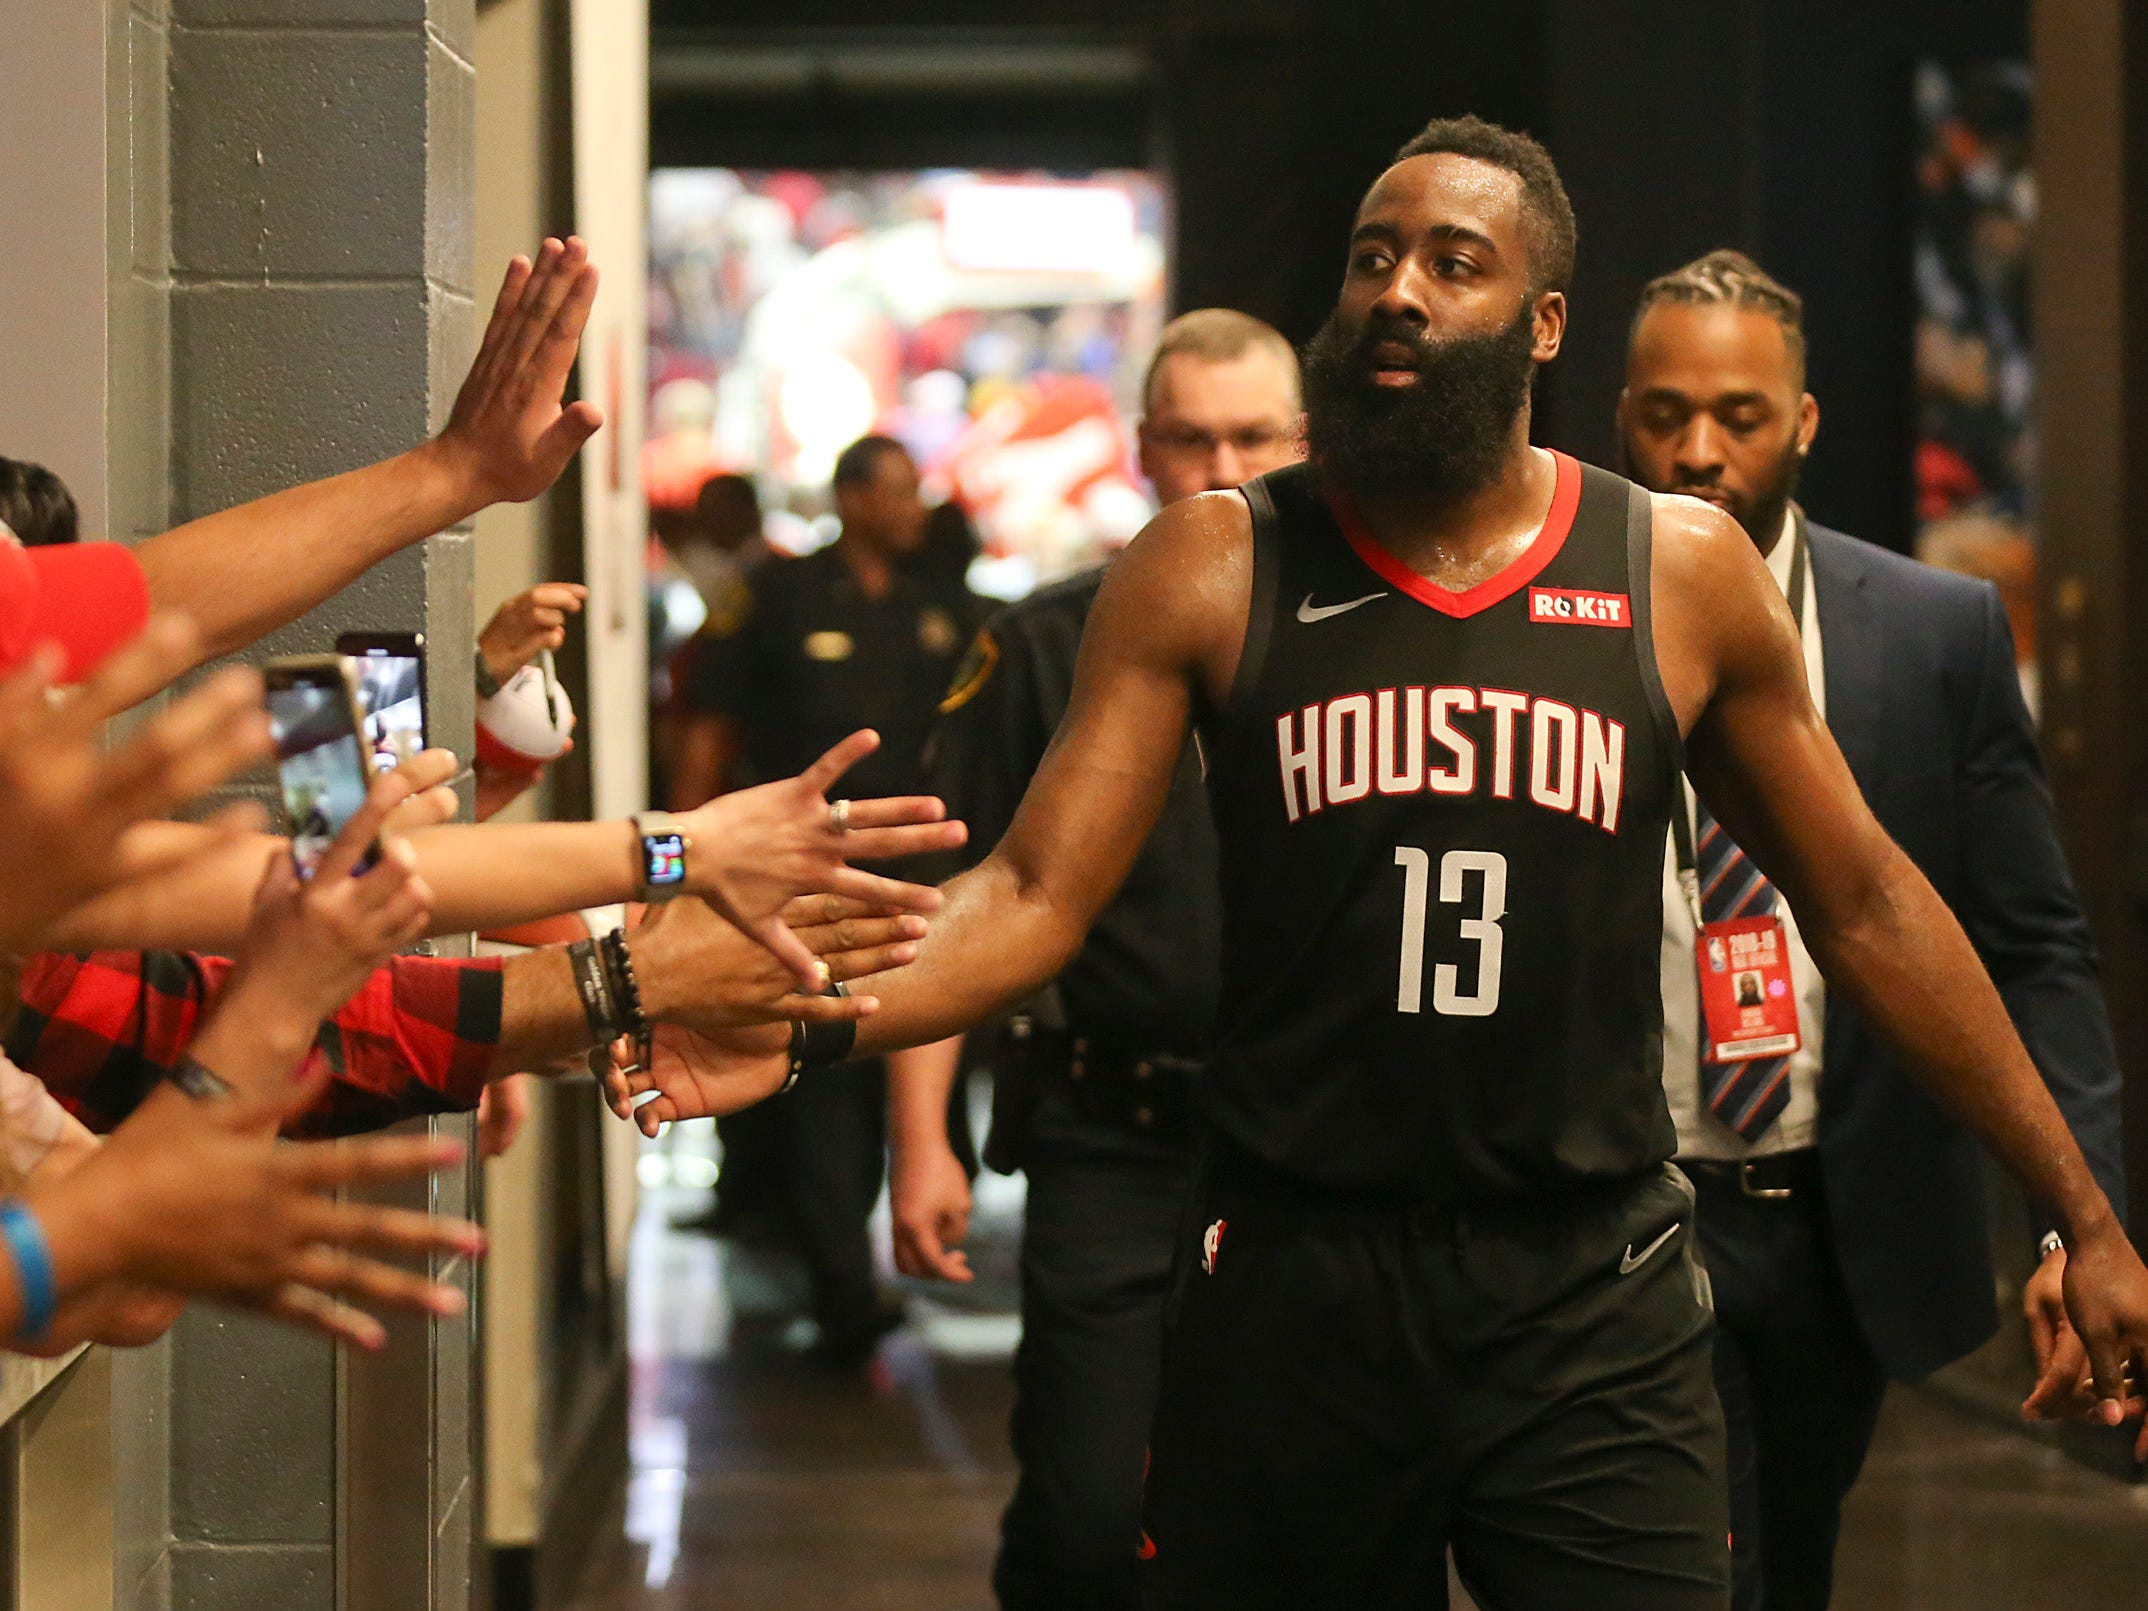 March 22: Rockets star James Harden celebrates with fans after tying his career high and franchise record with 61 points in a win over the Spurs.